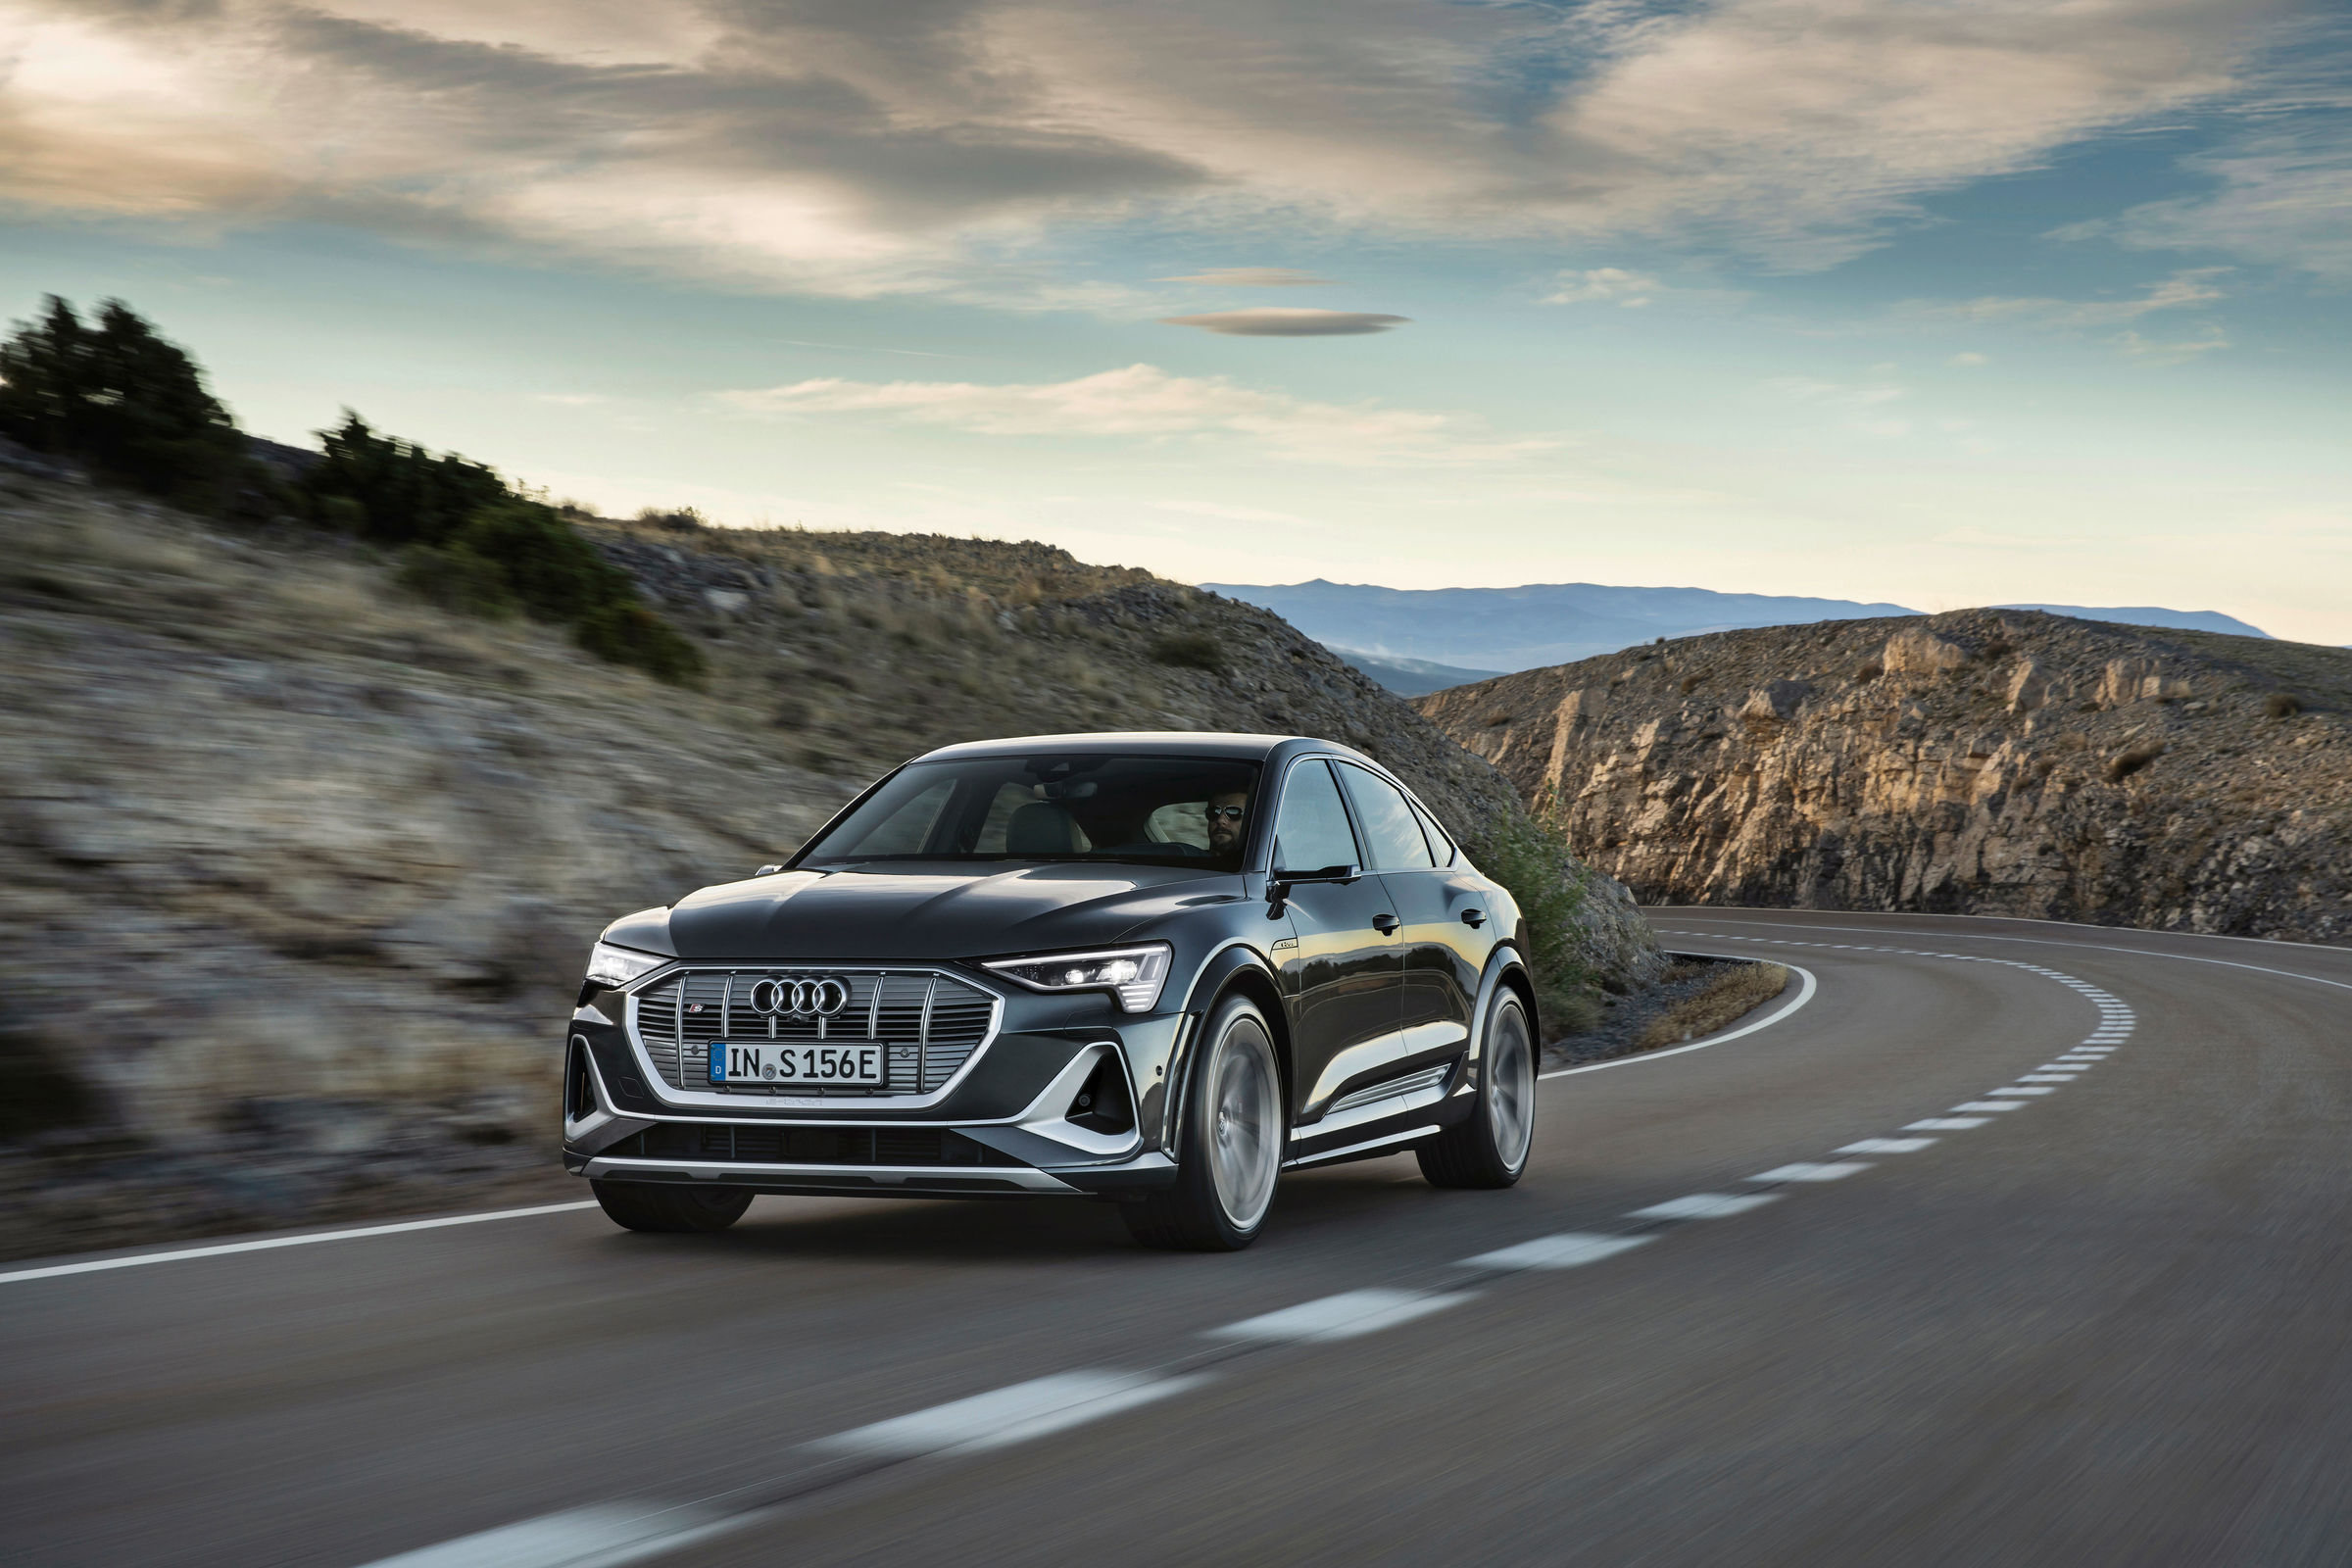 Audi Group achieves breakeven thanks to strong Q3 2020 Brandspurng 2